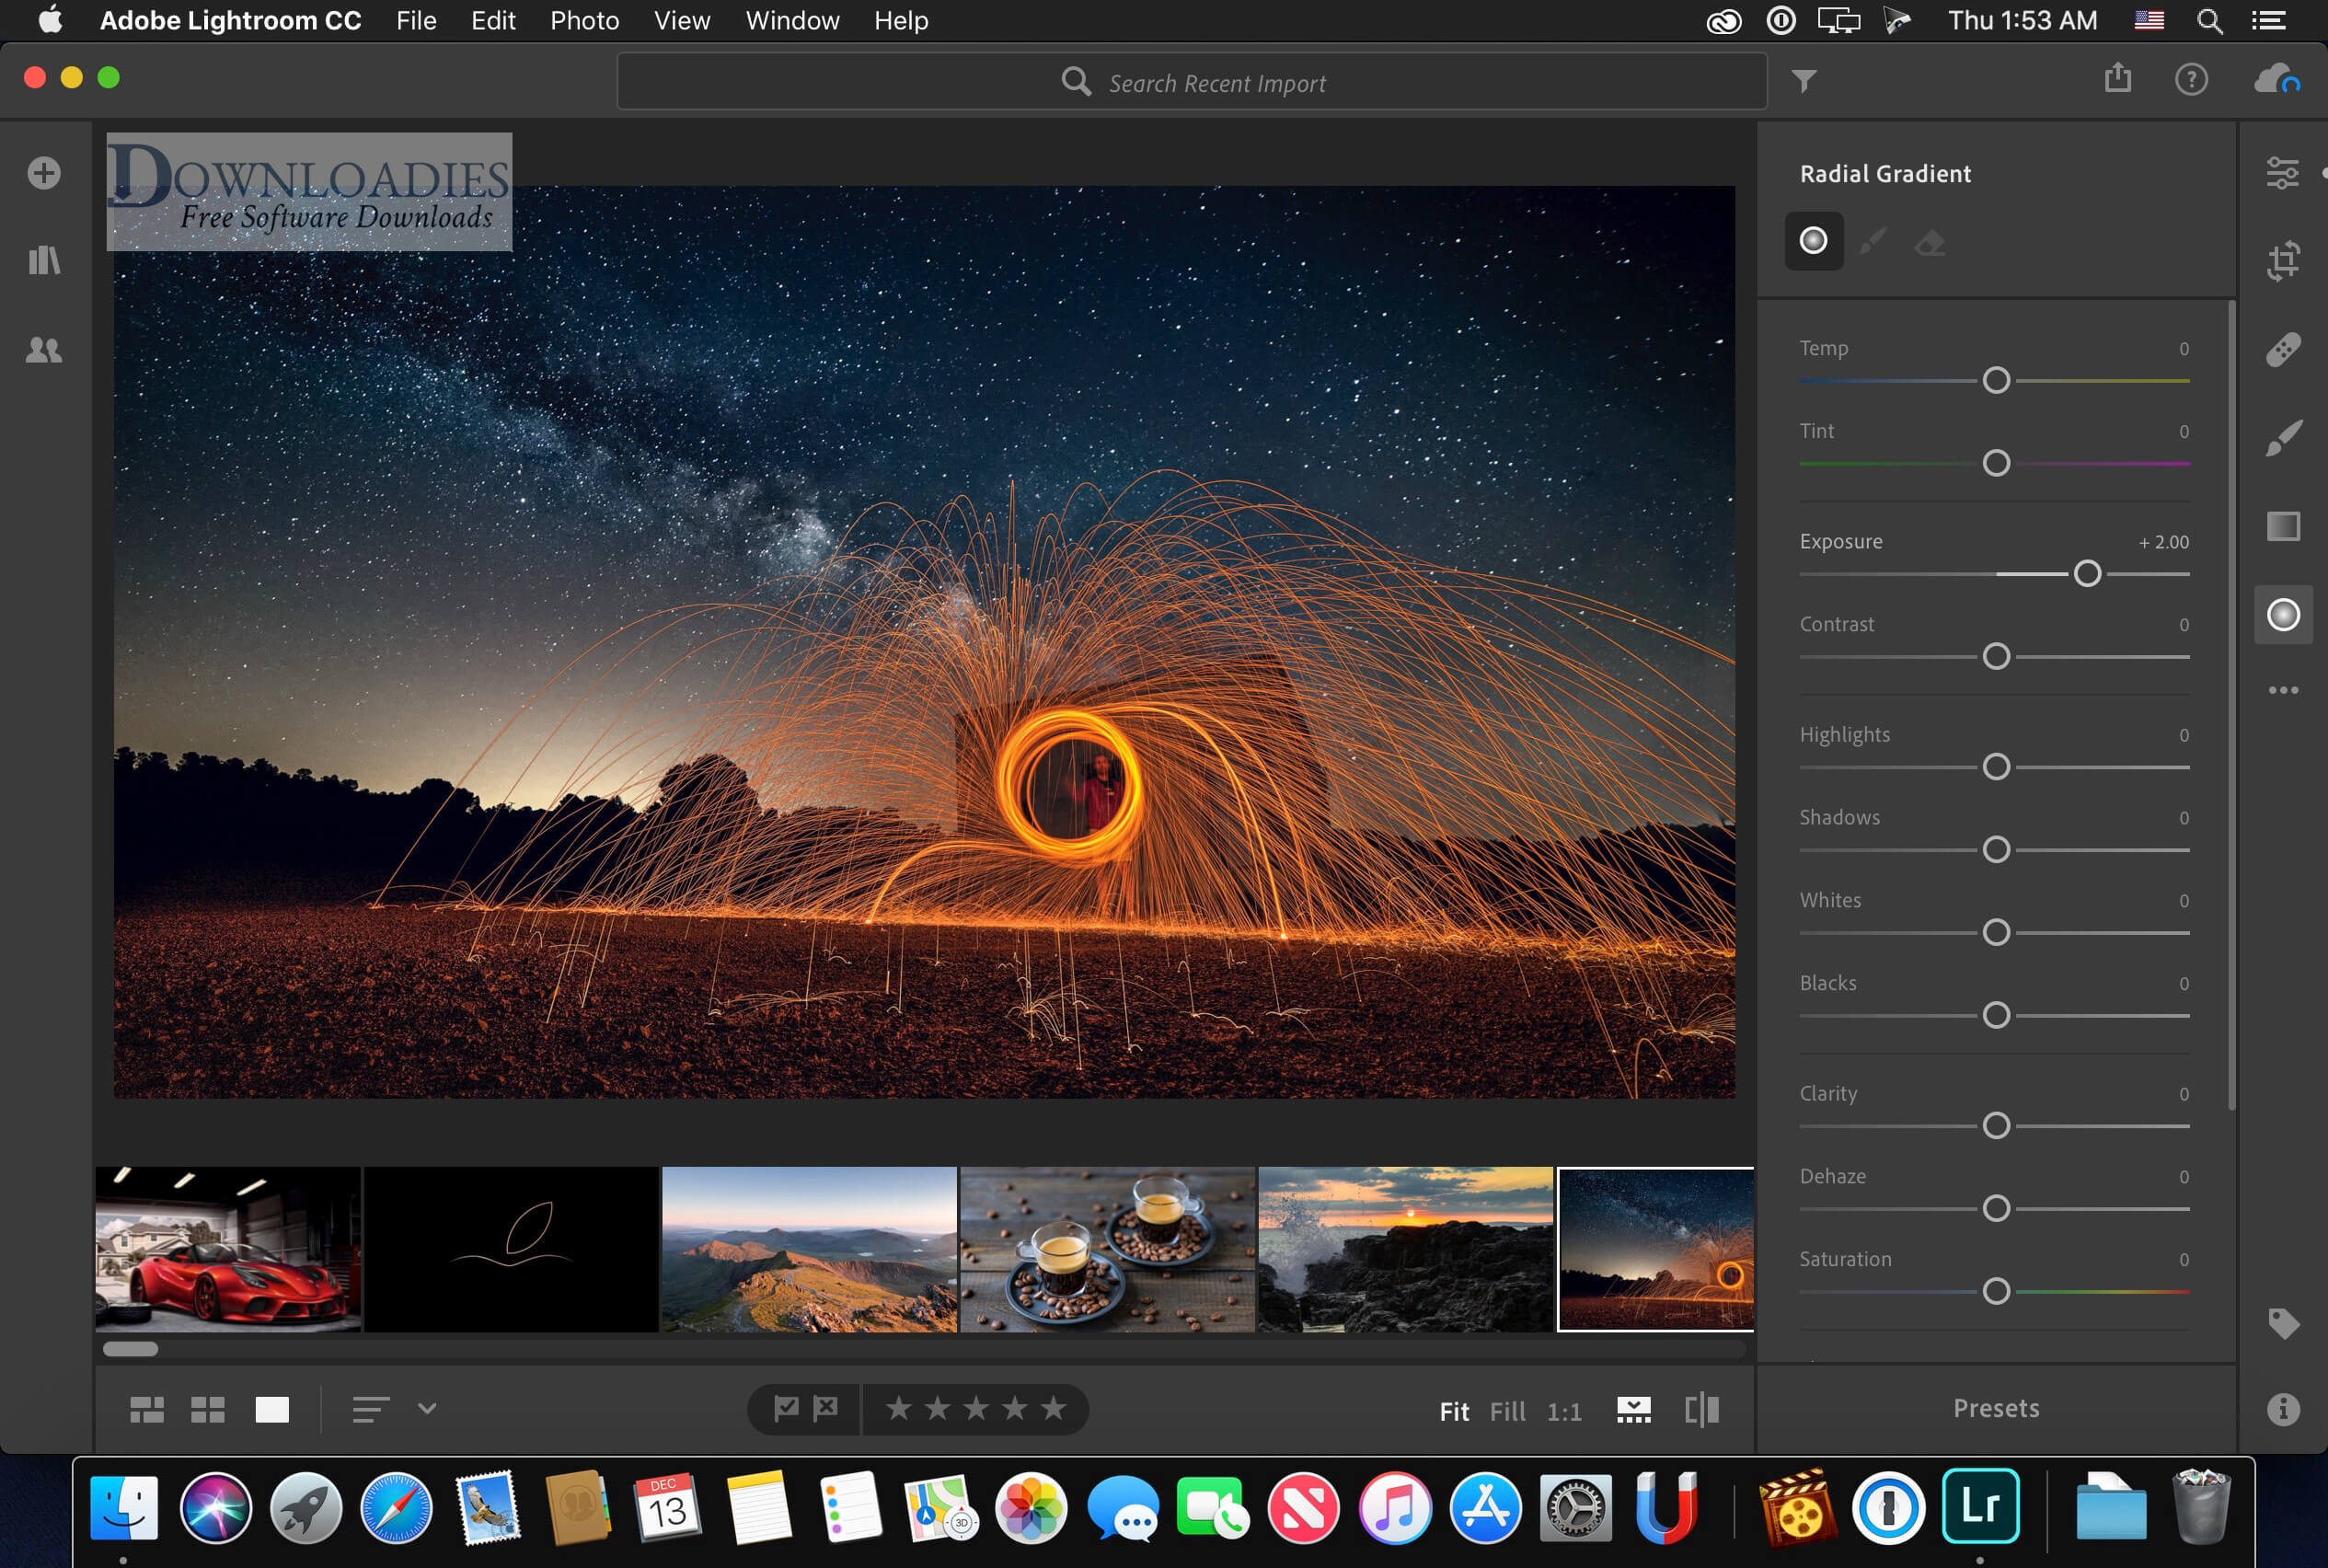 Adobe Photoshop Lightroom CC 2.3 for Mac free download free